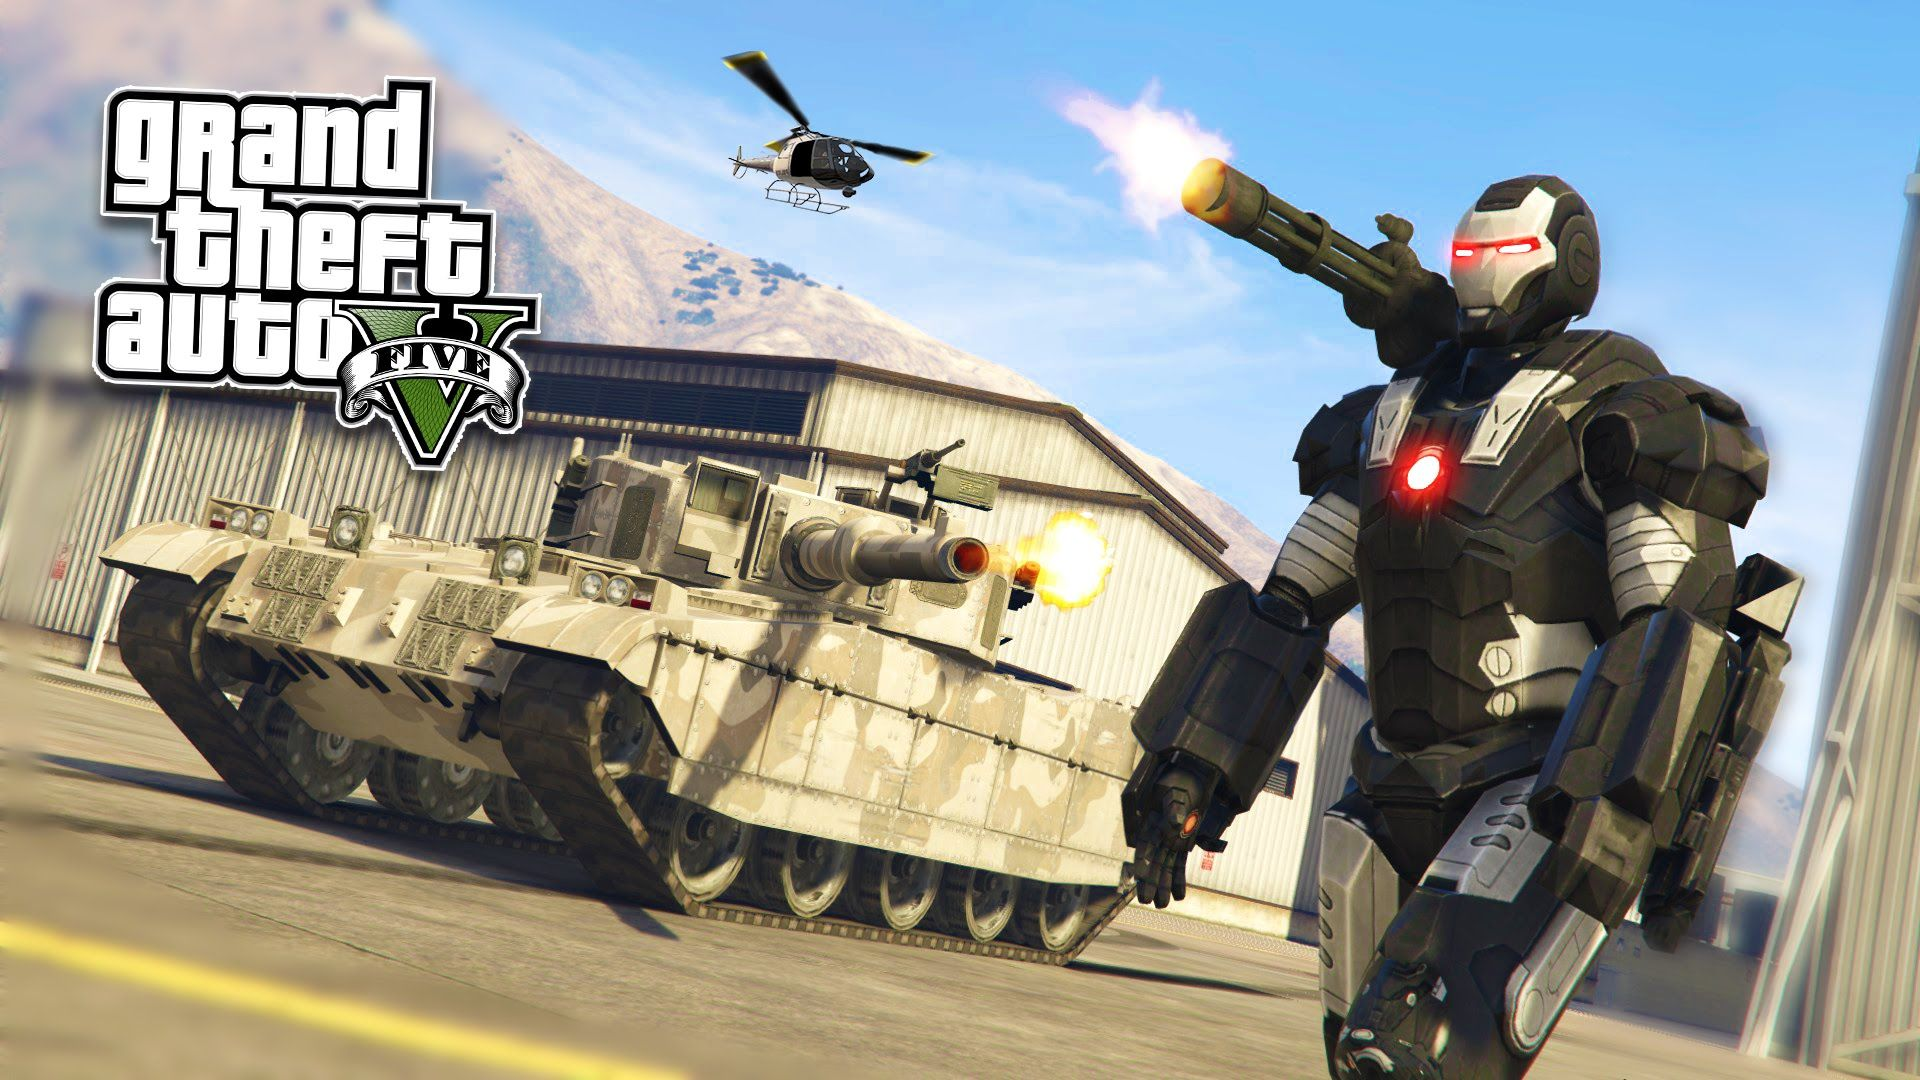 GTA 5 PC Mods - WAR MACHINE Iron Man Mod!!! GTA 5 War